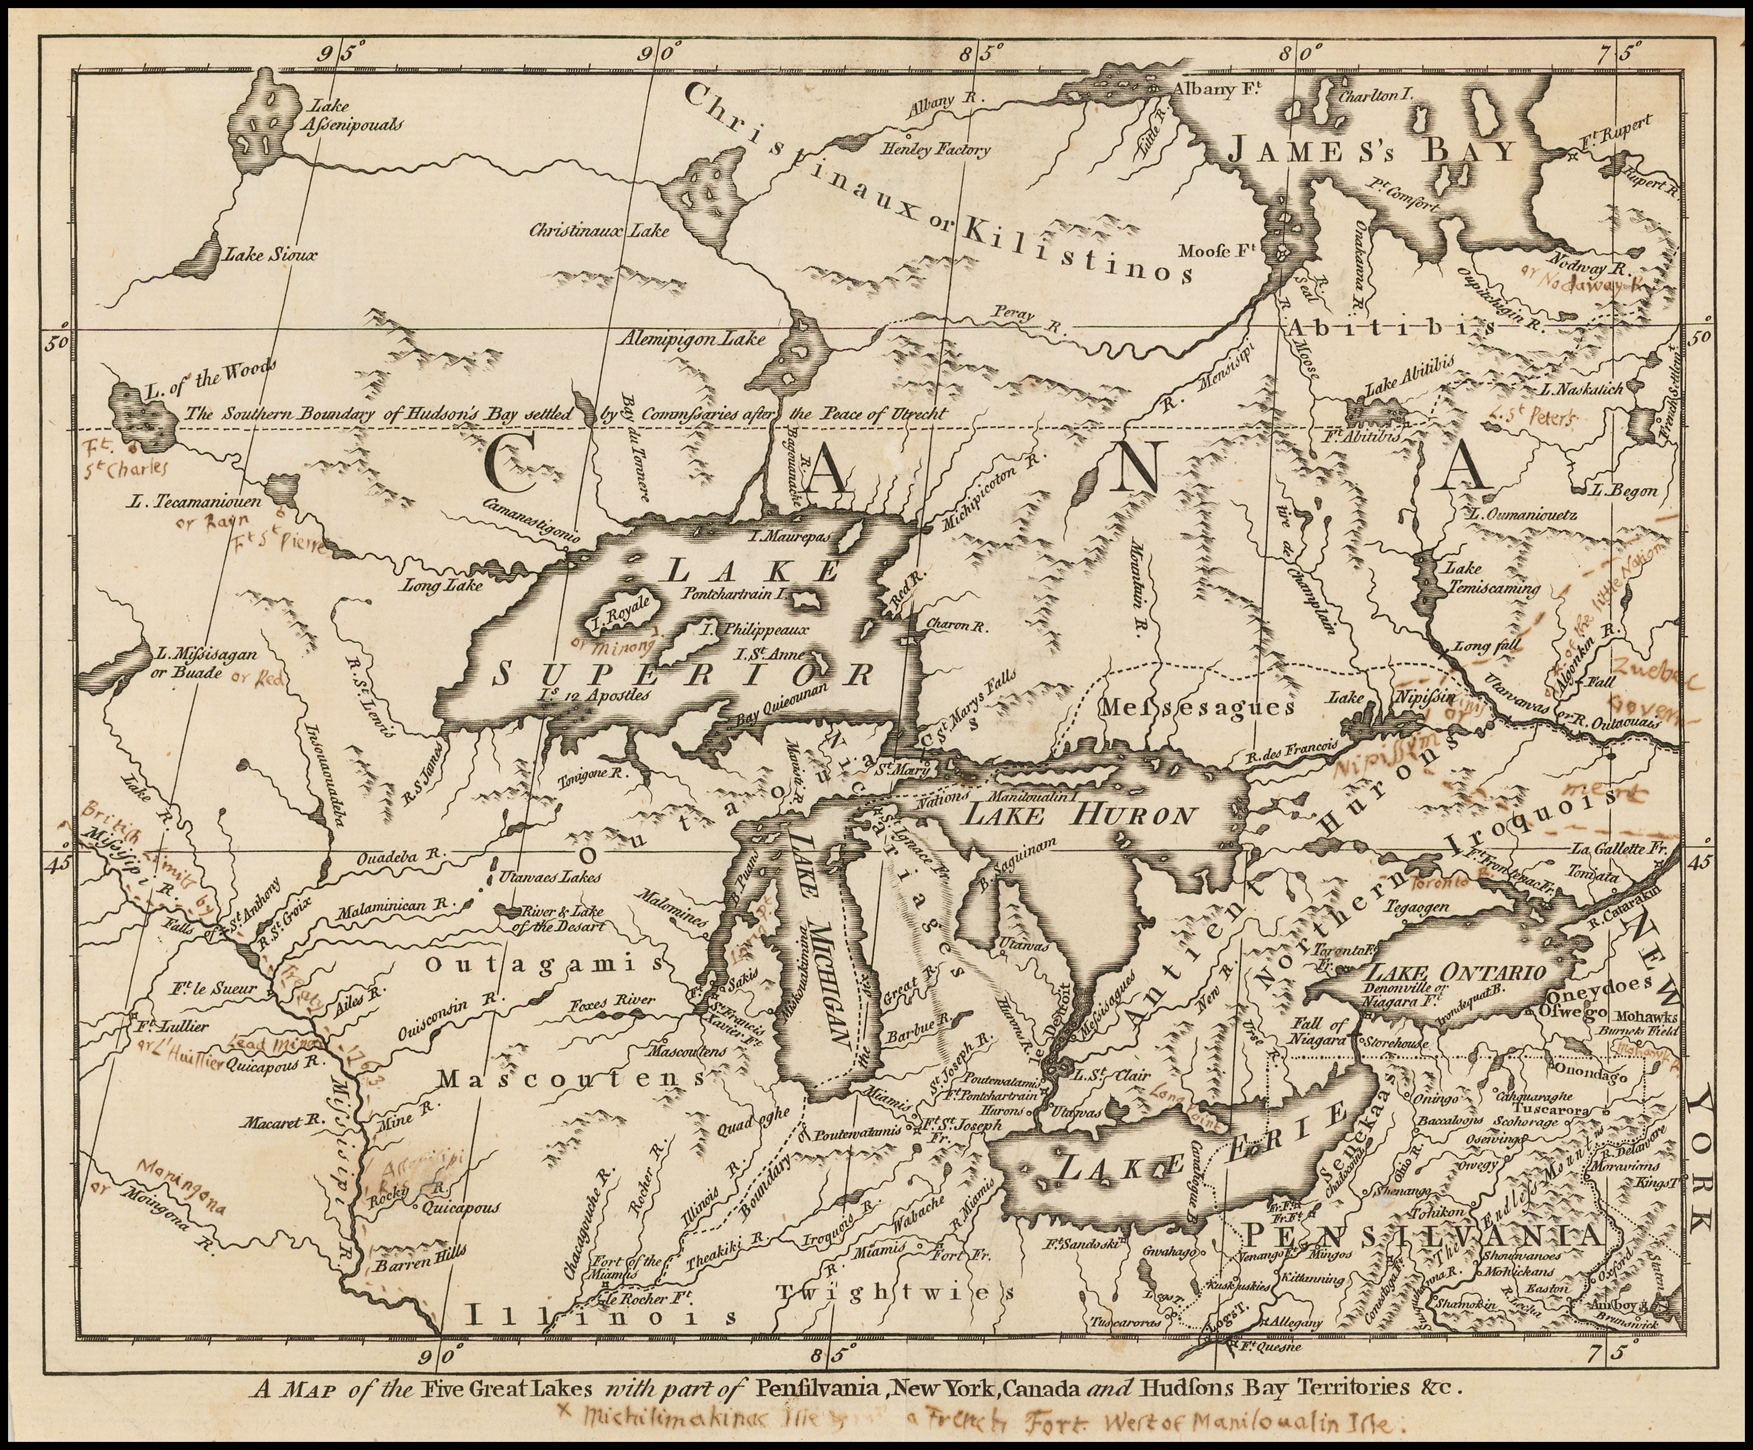 A Map Of The Five Great Lakes With Part Of Pensilvania